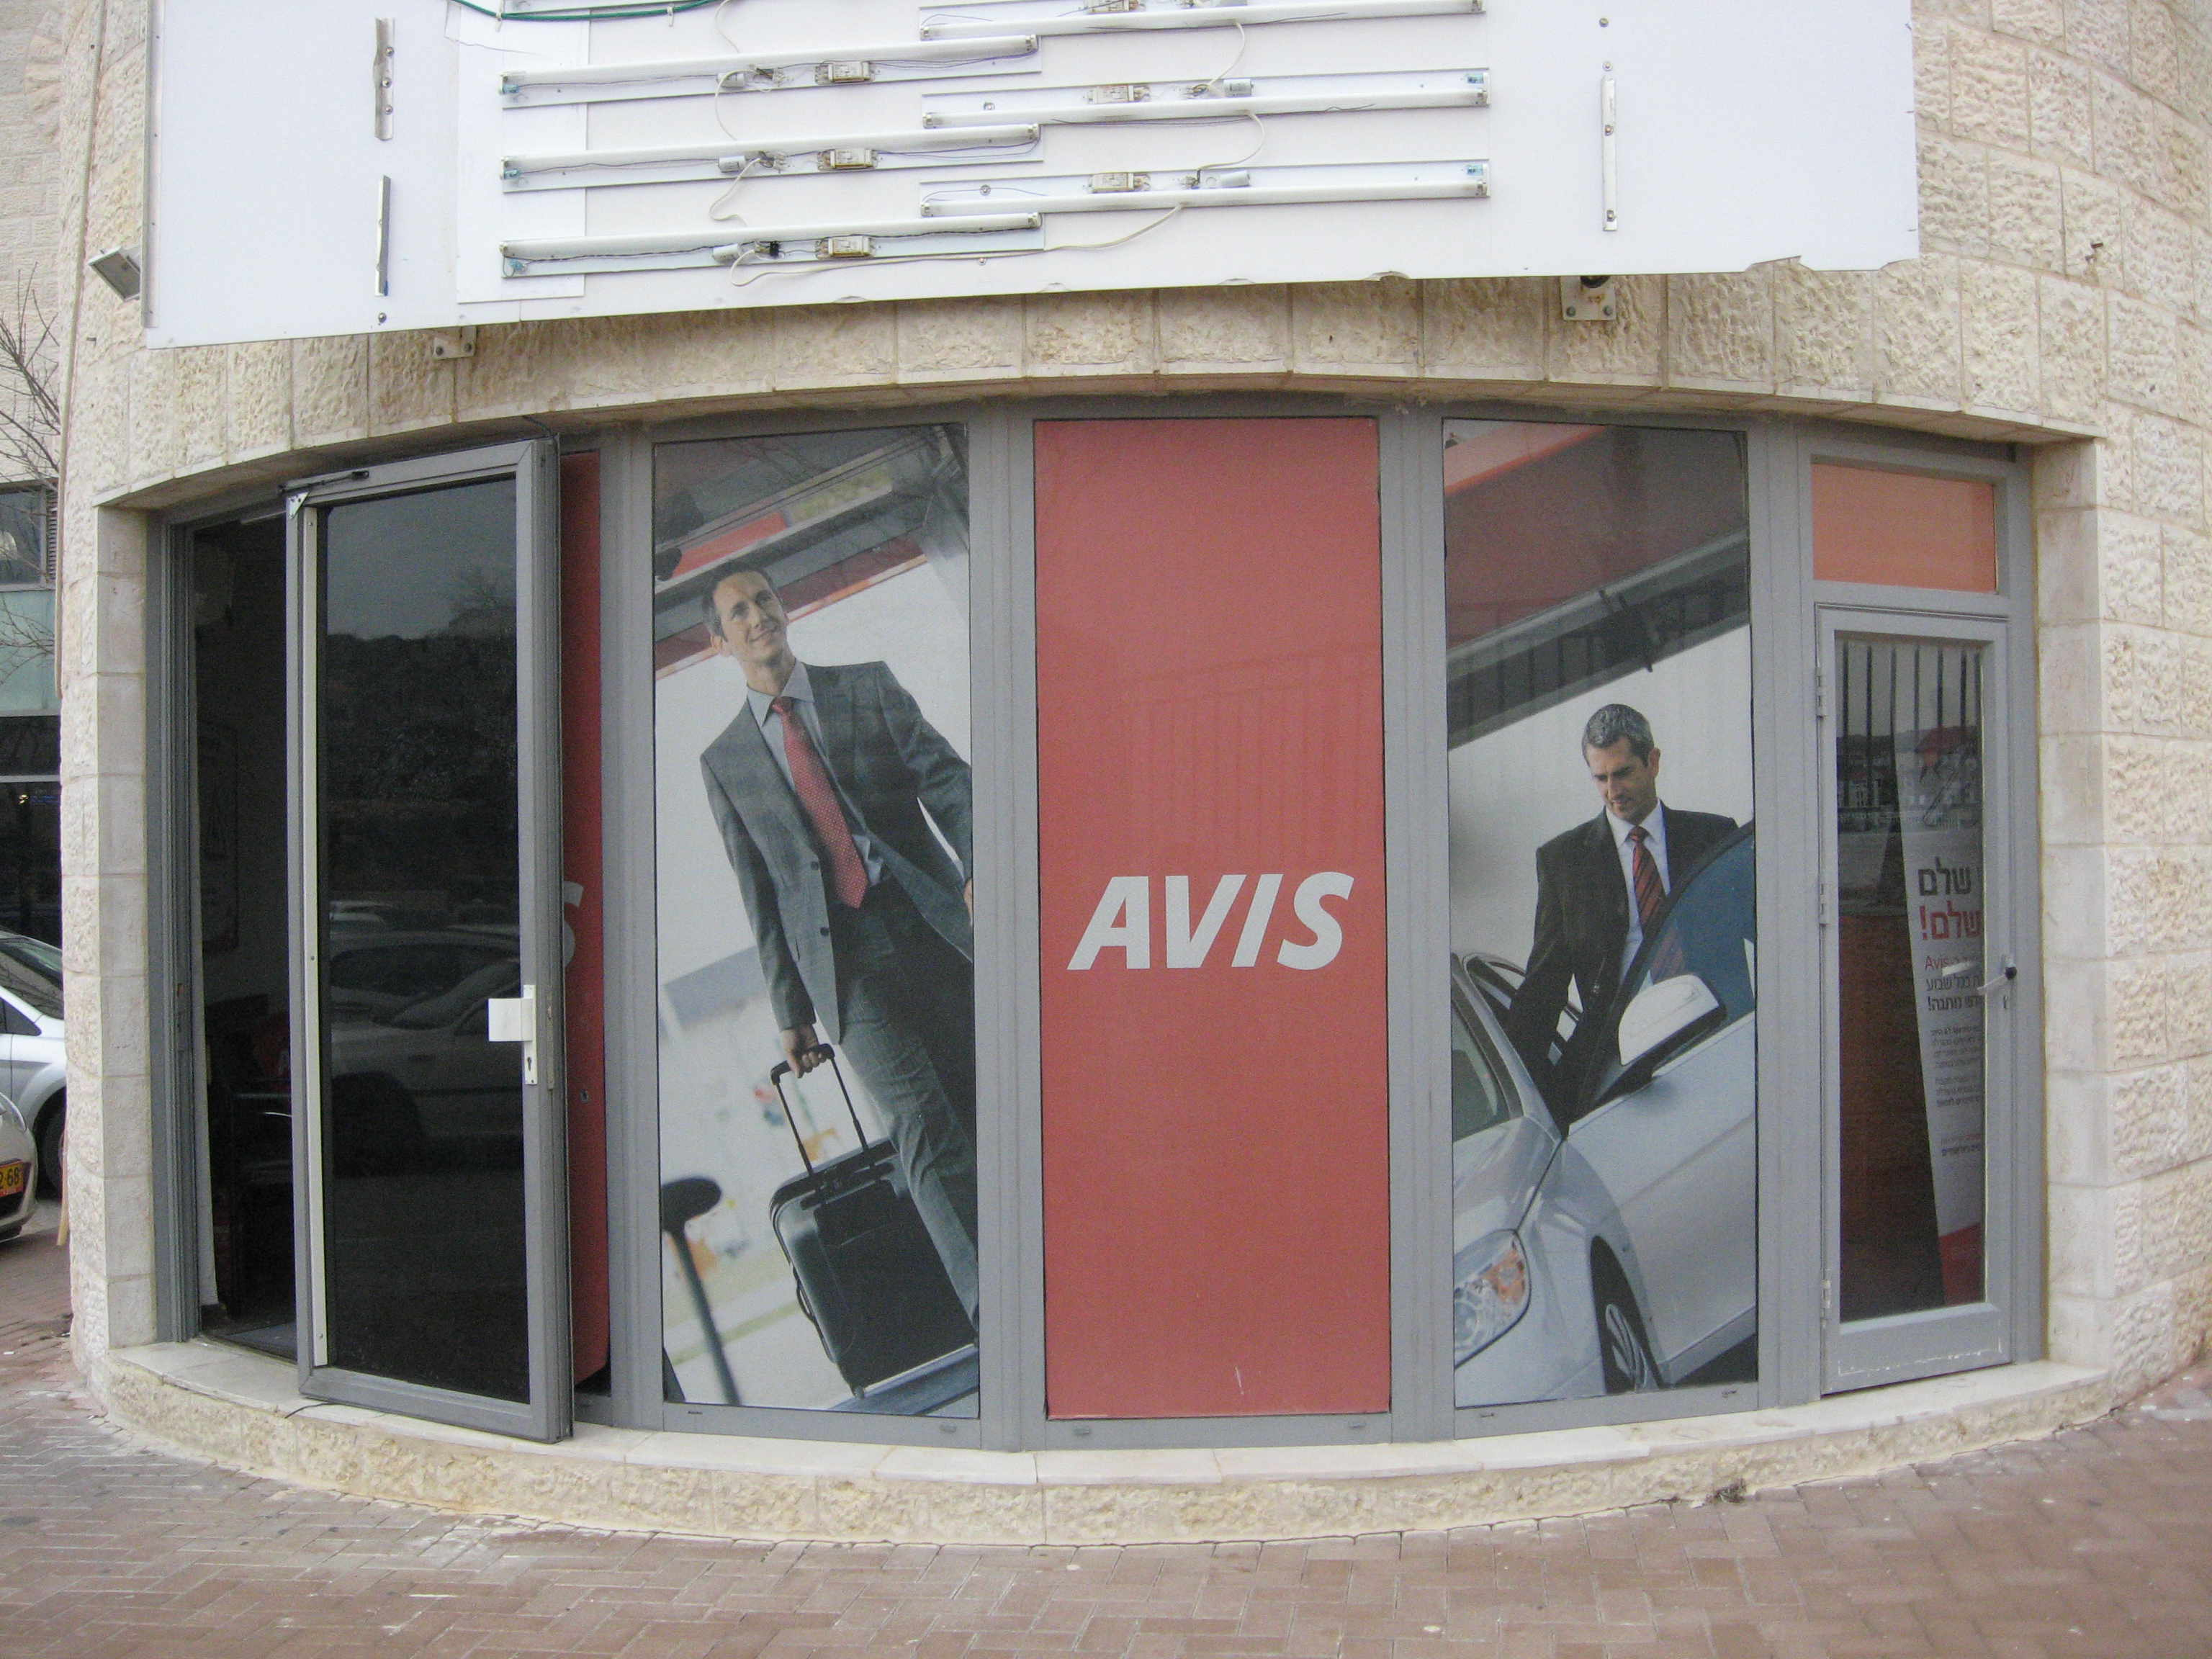 An Avis car rental office in the illegal Israeli settlement of Beitar Illit